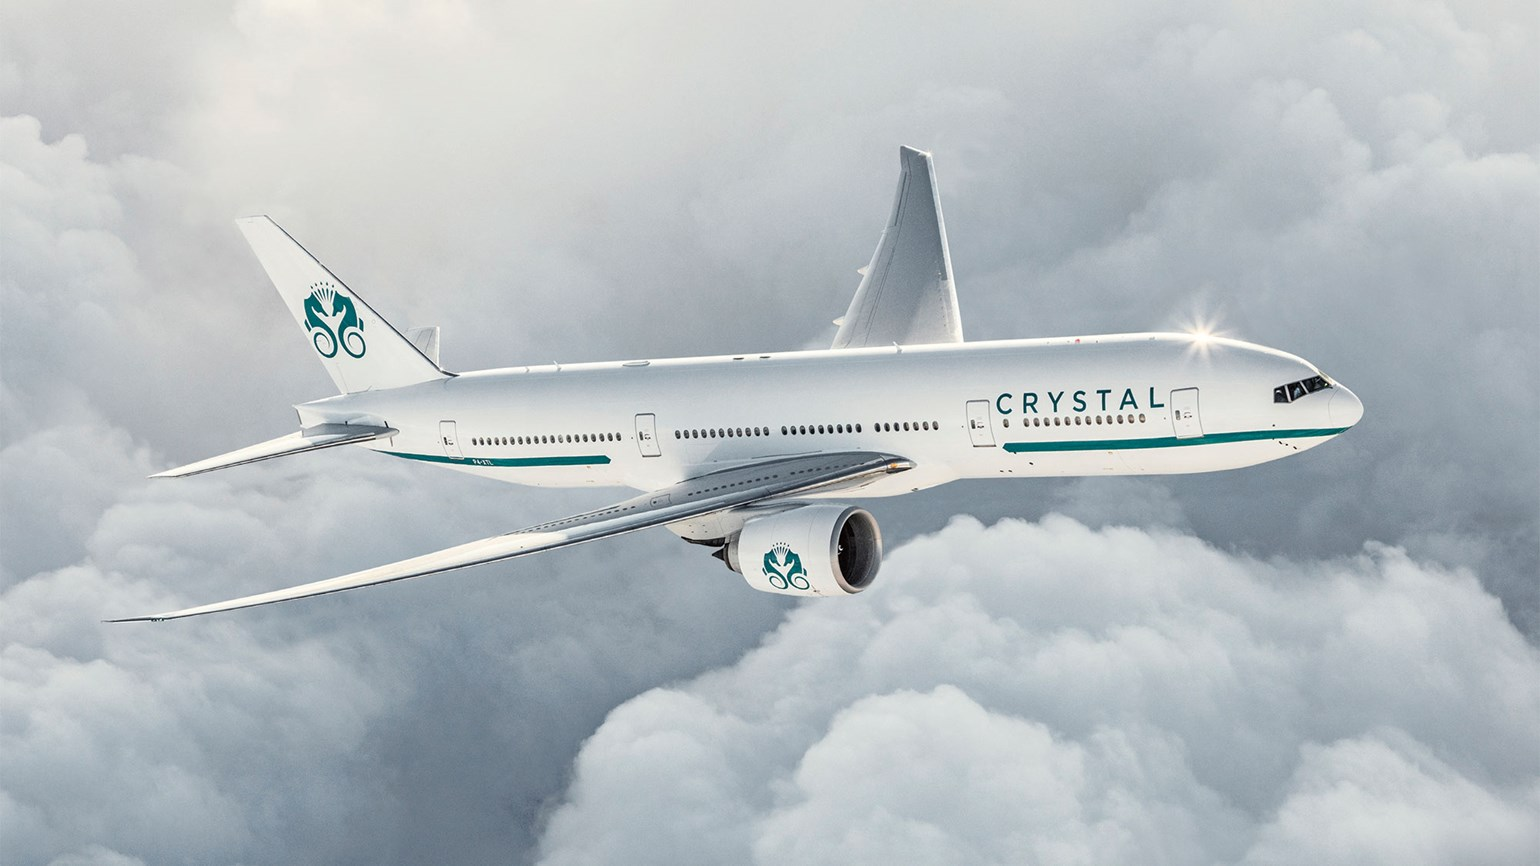 Agents not surprised Crystal swung and missed on air cruises